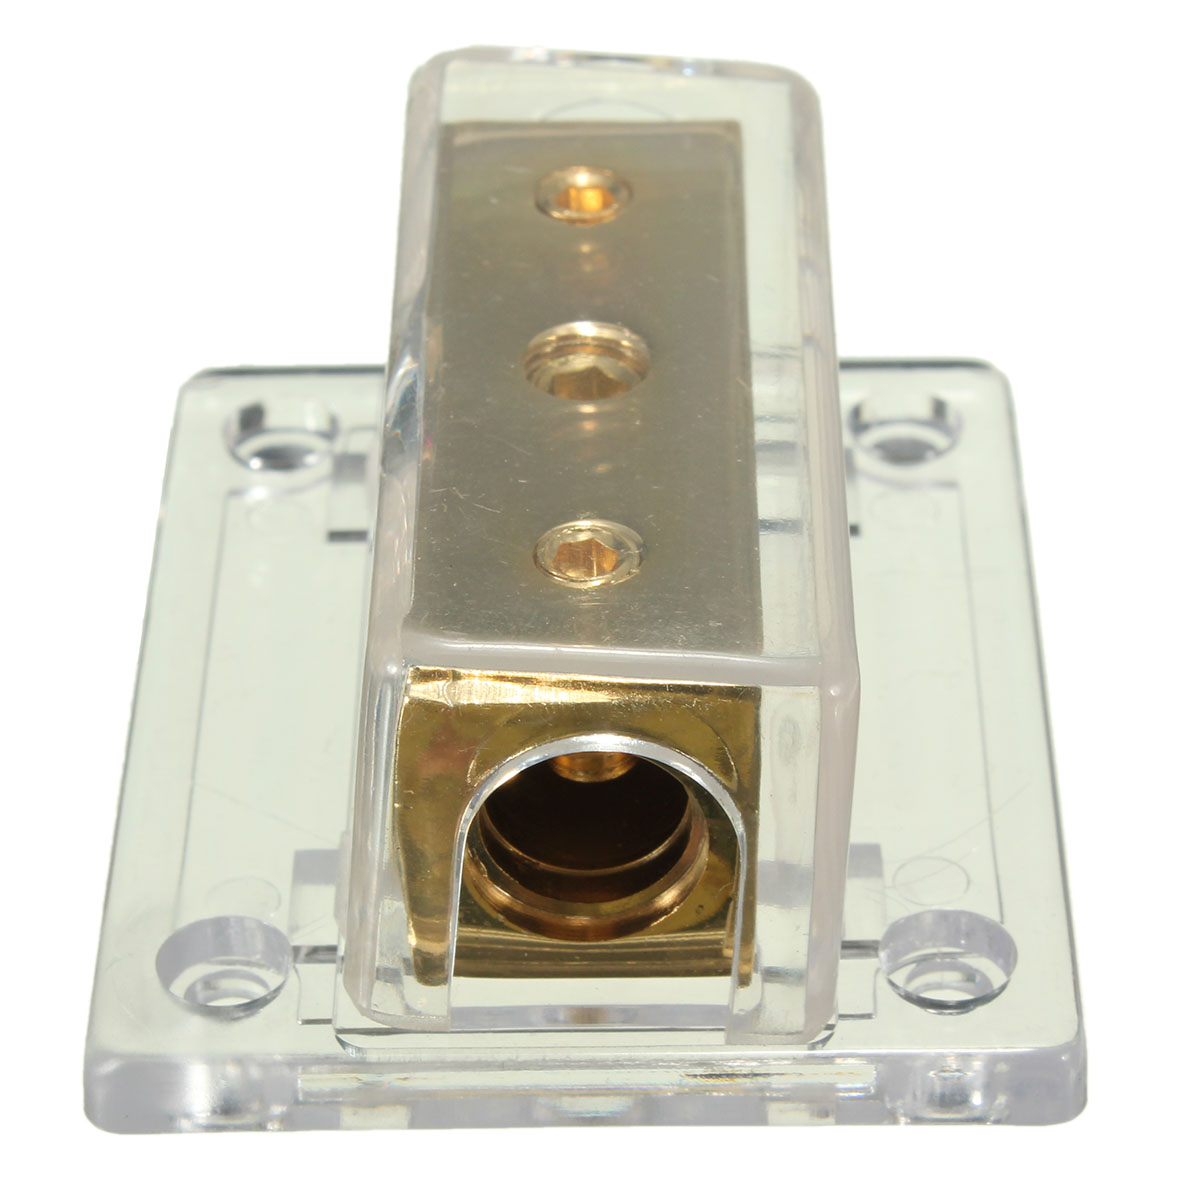 2-Way Solid Metal Power Distribution Block Splitter Gold Plated For Cars Boats